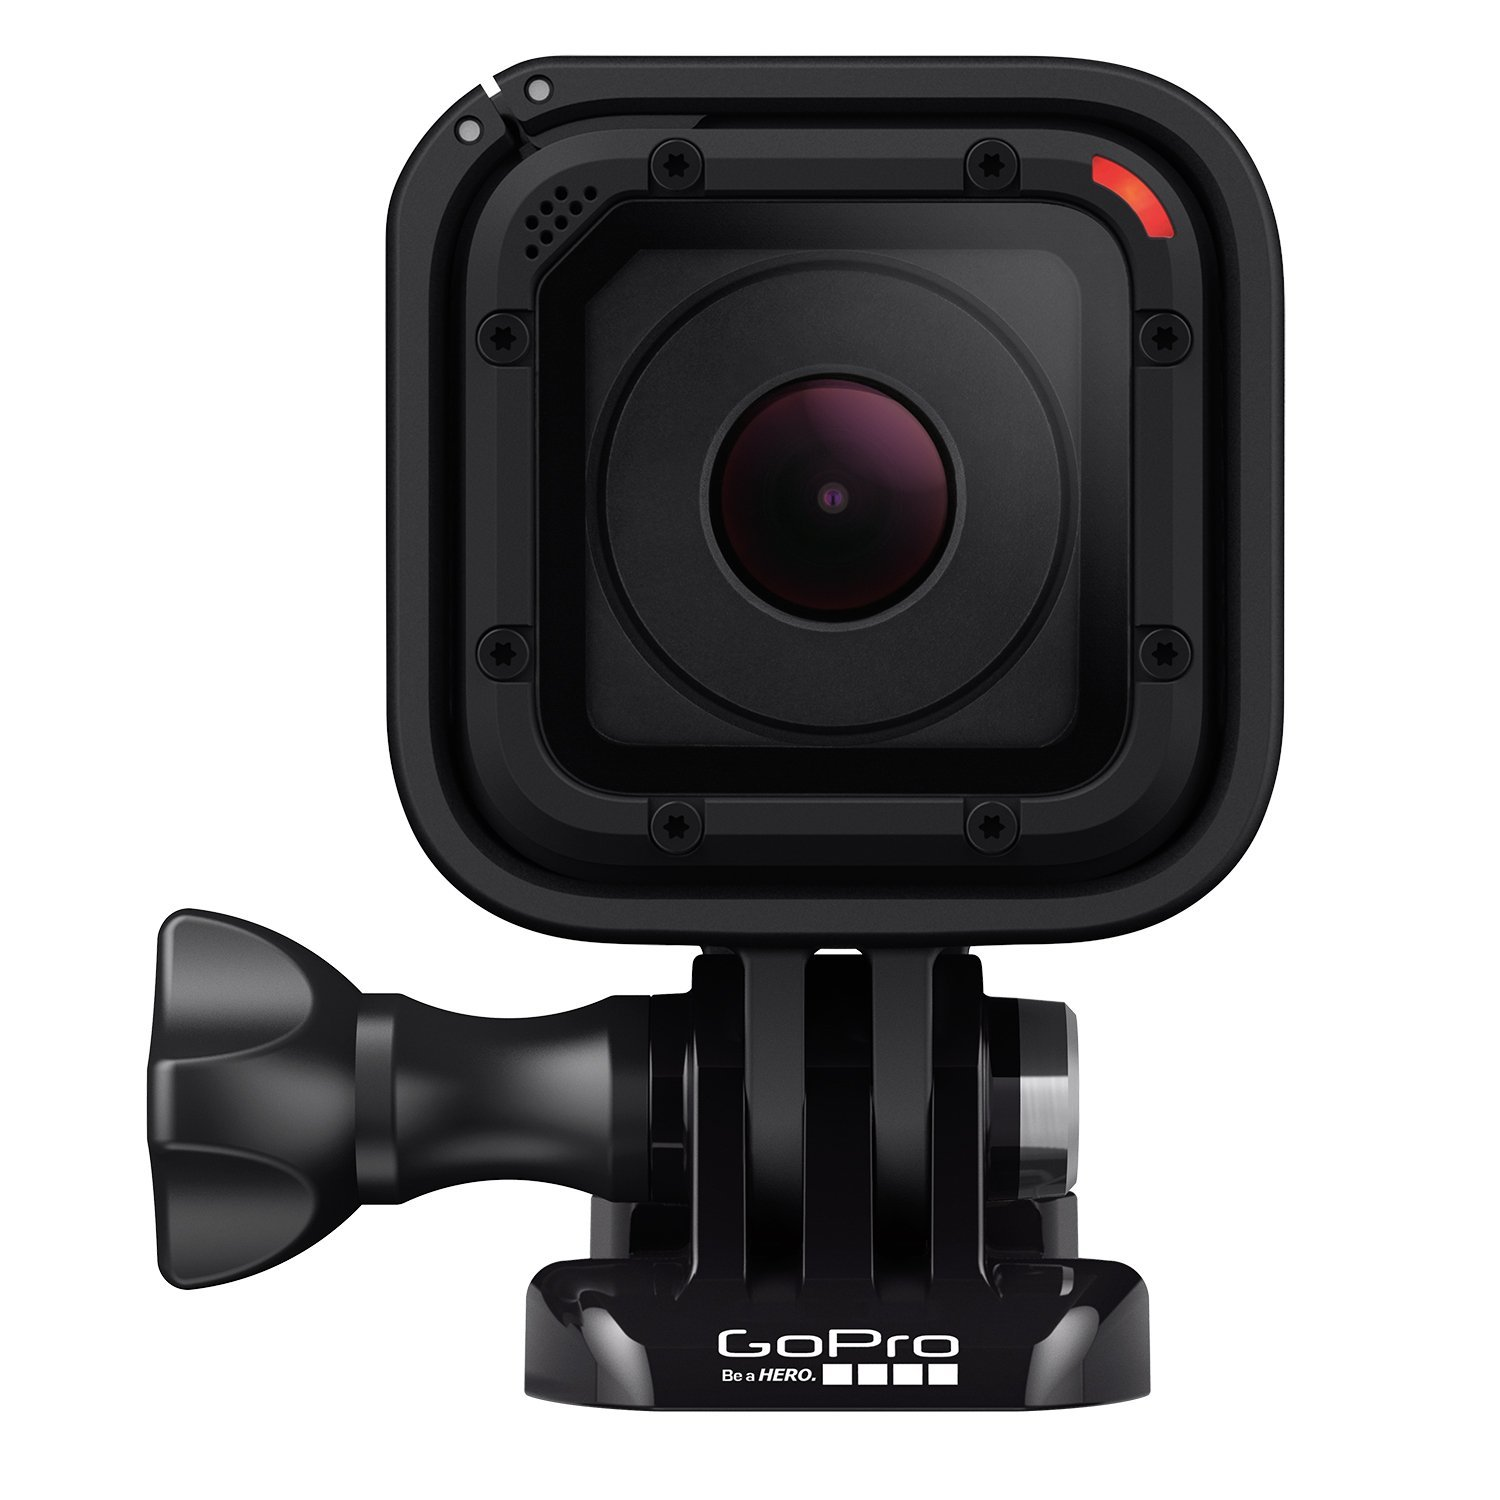 GoPro is rumored to announce a new entry-level camera (with form factor) next year that will replace the current Hero Session model: New for 2018 - Photo Rumors